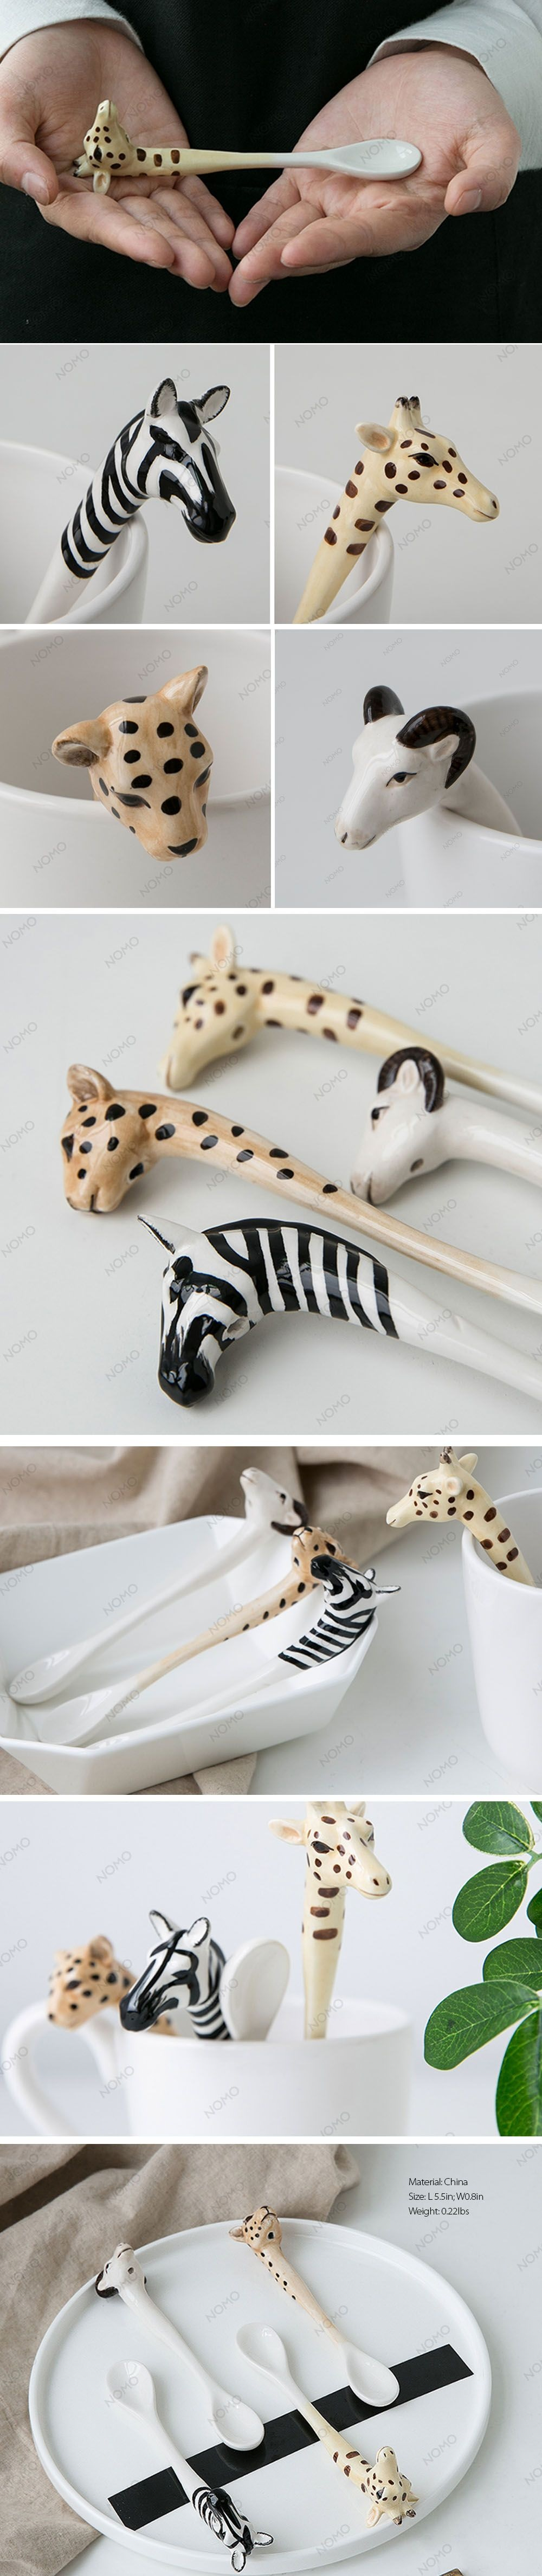 Nordic Animal Spoon Set Nordic Style